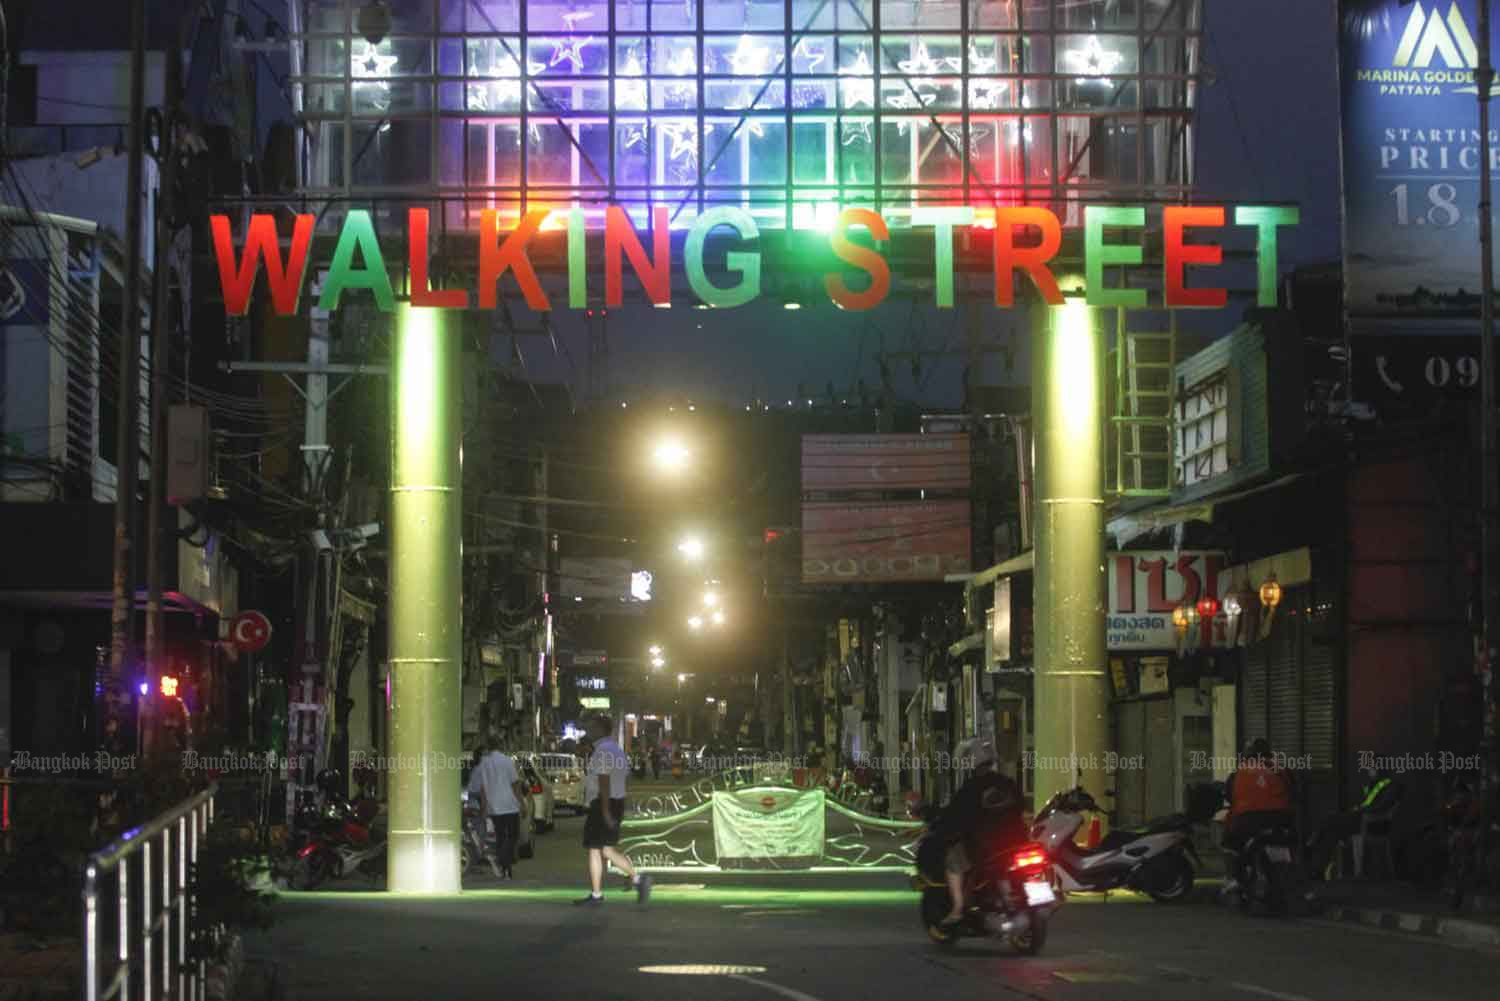 A sign lights up the entrance to Walking Street in Pattaya where business has ground to a halt since the onset of the Covid-19 pandemic. Nutthawat Wicheanbut